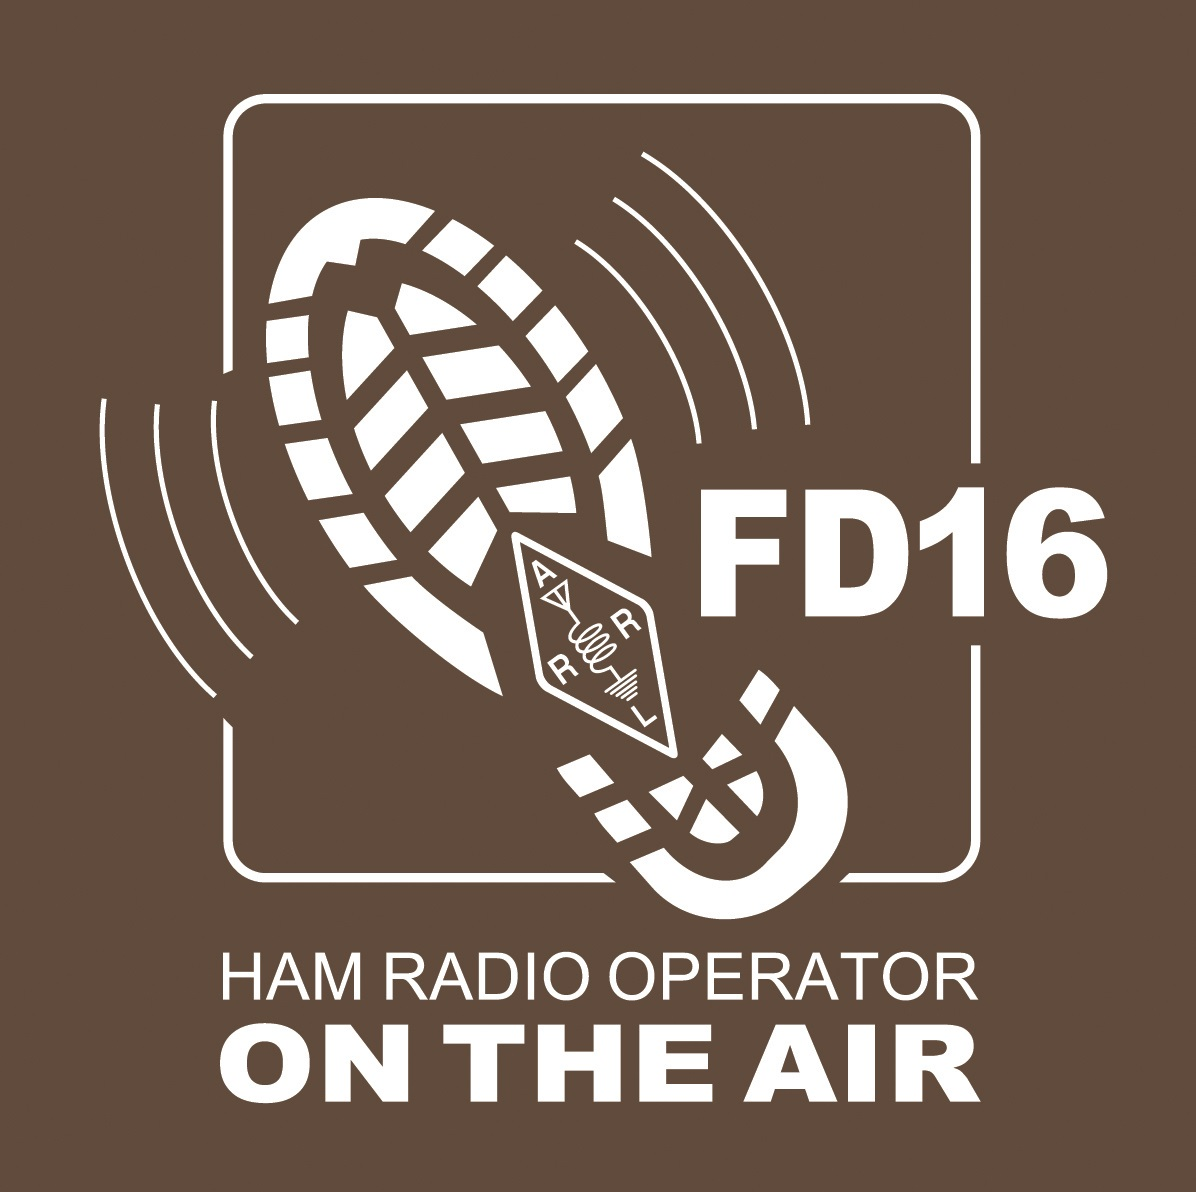 http://www.arrl.org/files/file/Field-Day/2016/2016%20Field%20Day%20Logo.jpg